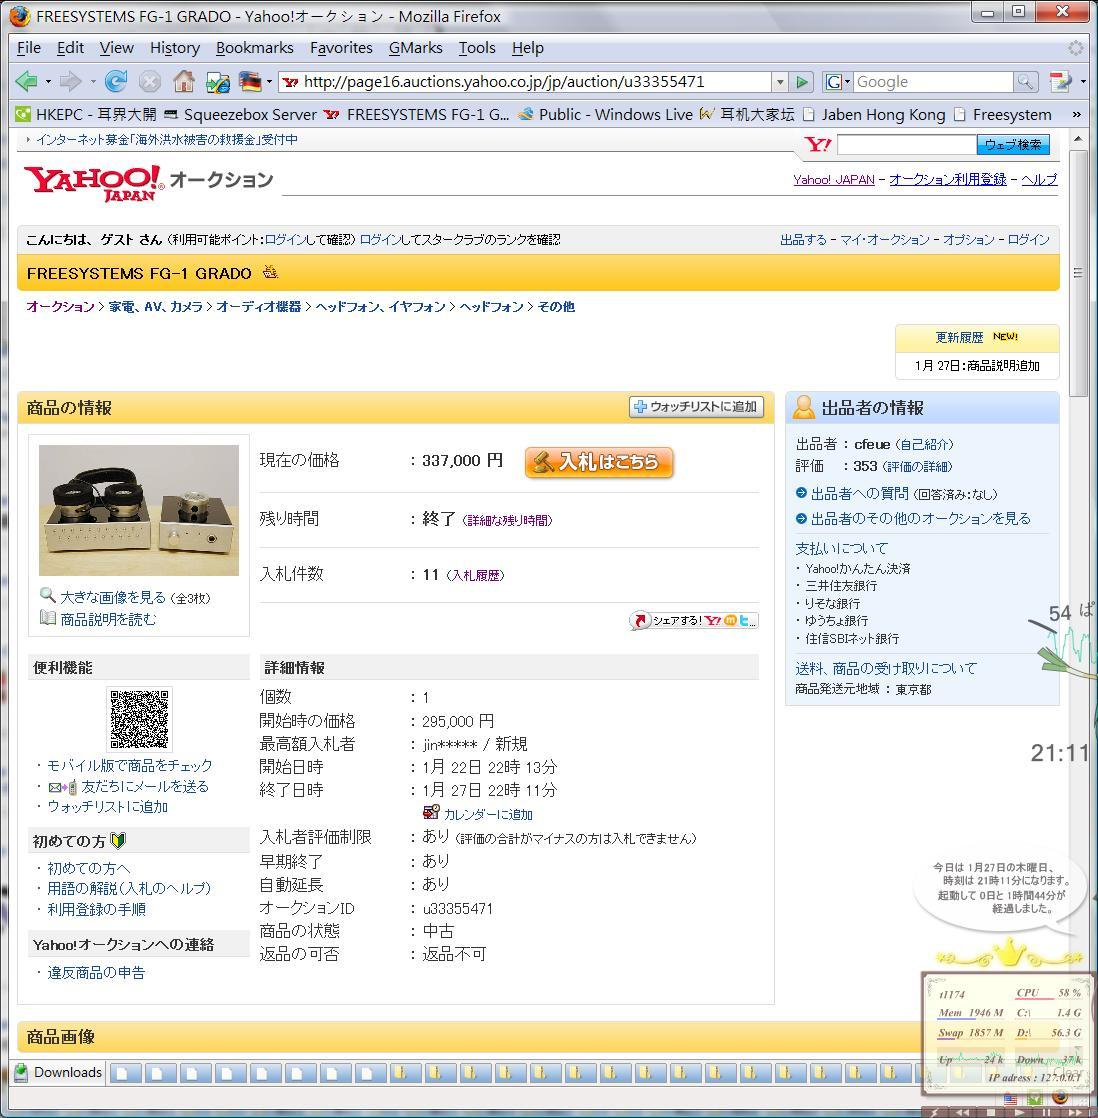 337 000 Japanese yen = 4 220.251 U.S. dollars <br /> <br /> As of 15 May 2012.<br /> <br />...